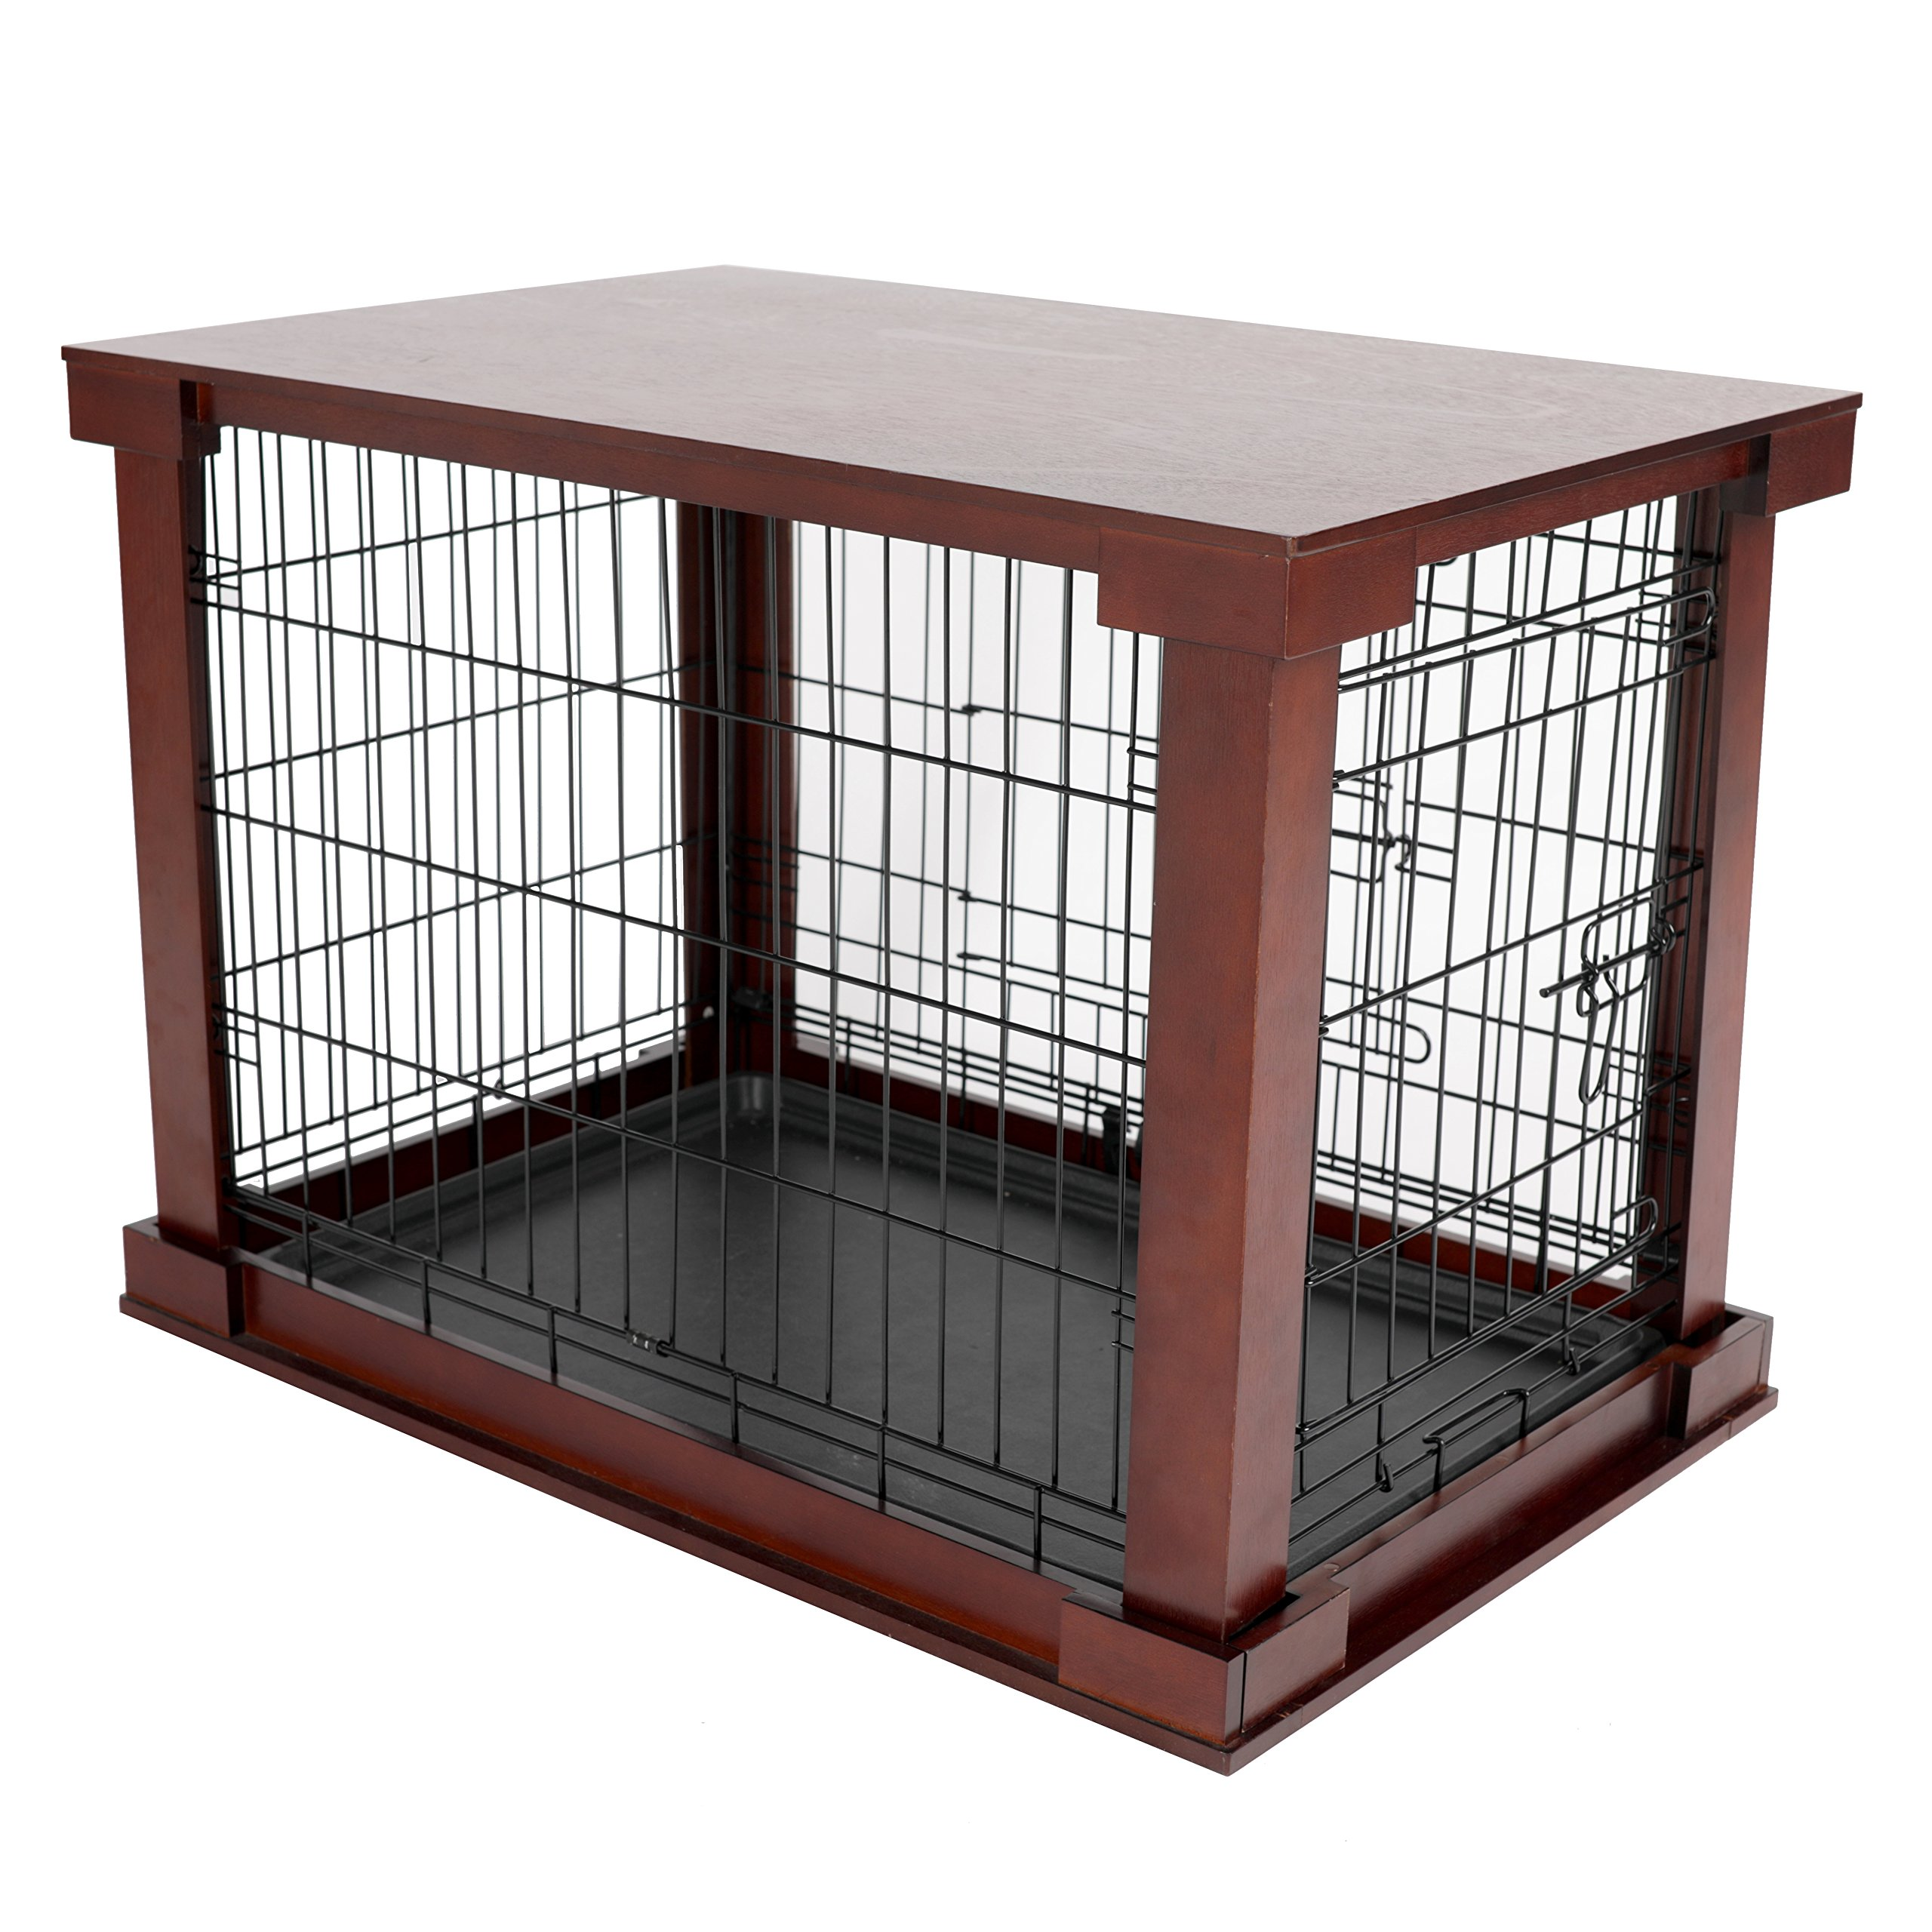 Merry Products Pet Cage with Crate Cover, Medium by Merry Pet